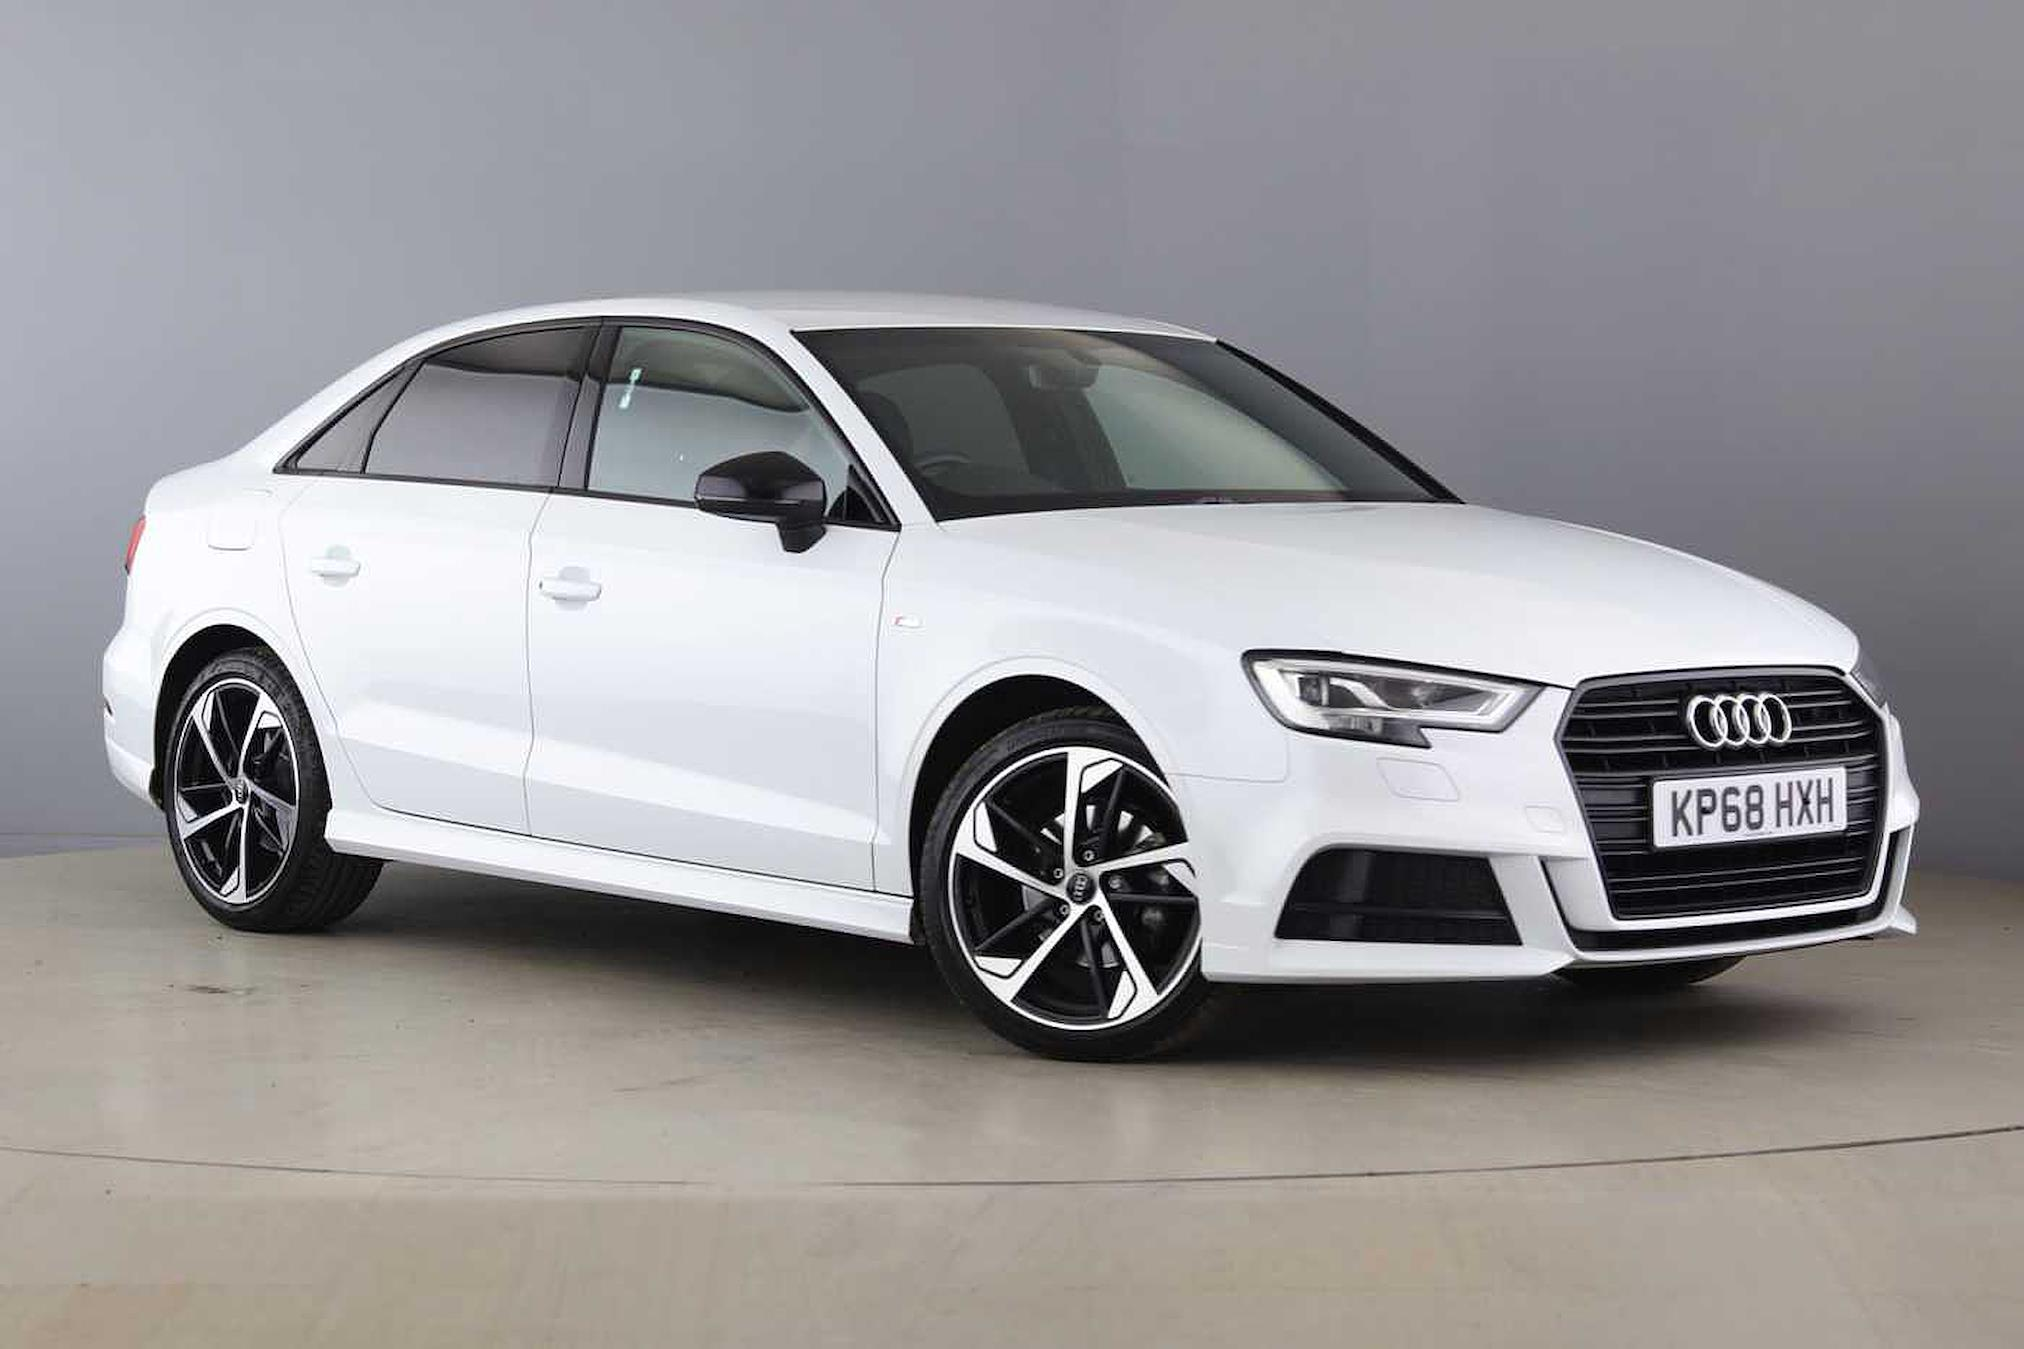 Nearly New A3 Audi Black Edition 35 Tfsi 150 Ps S Tronic 2019 Lookers